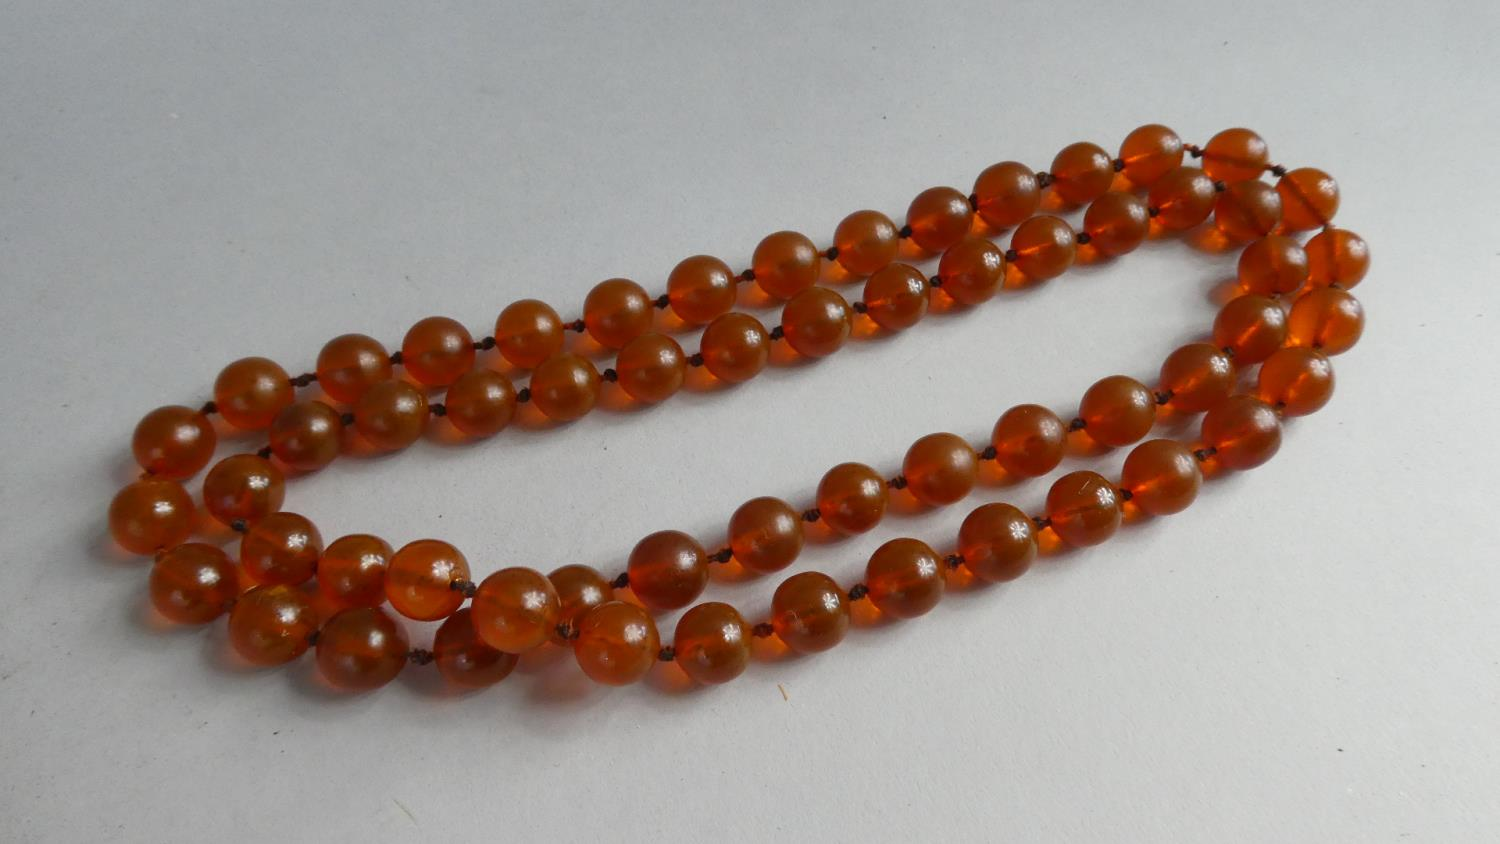 Lot 340 - A Long String of Orange Amber Spherical Beads, 59 in total, Each Approx 1.5cms Diameter on Knotted